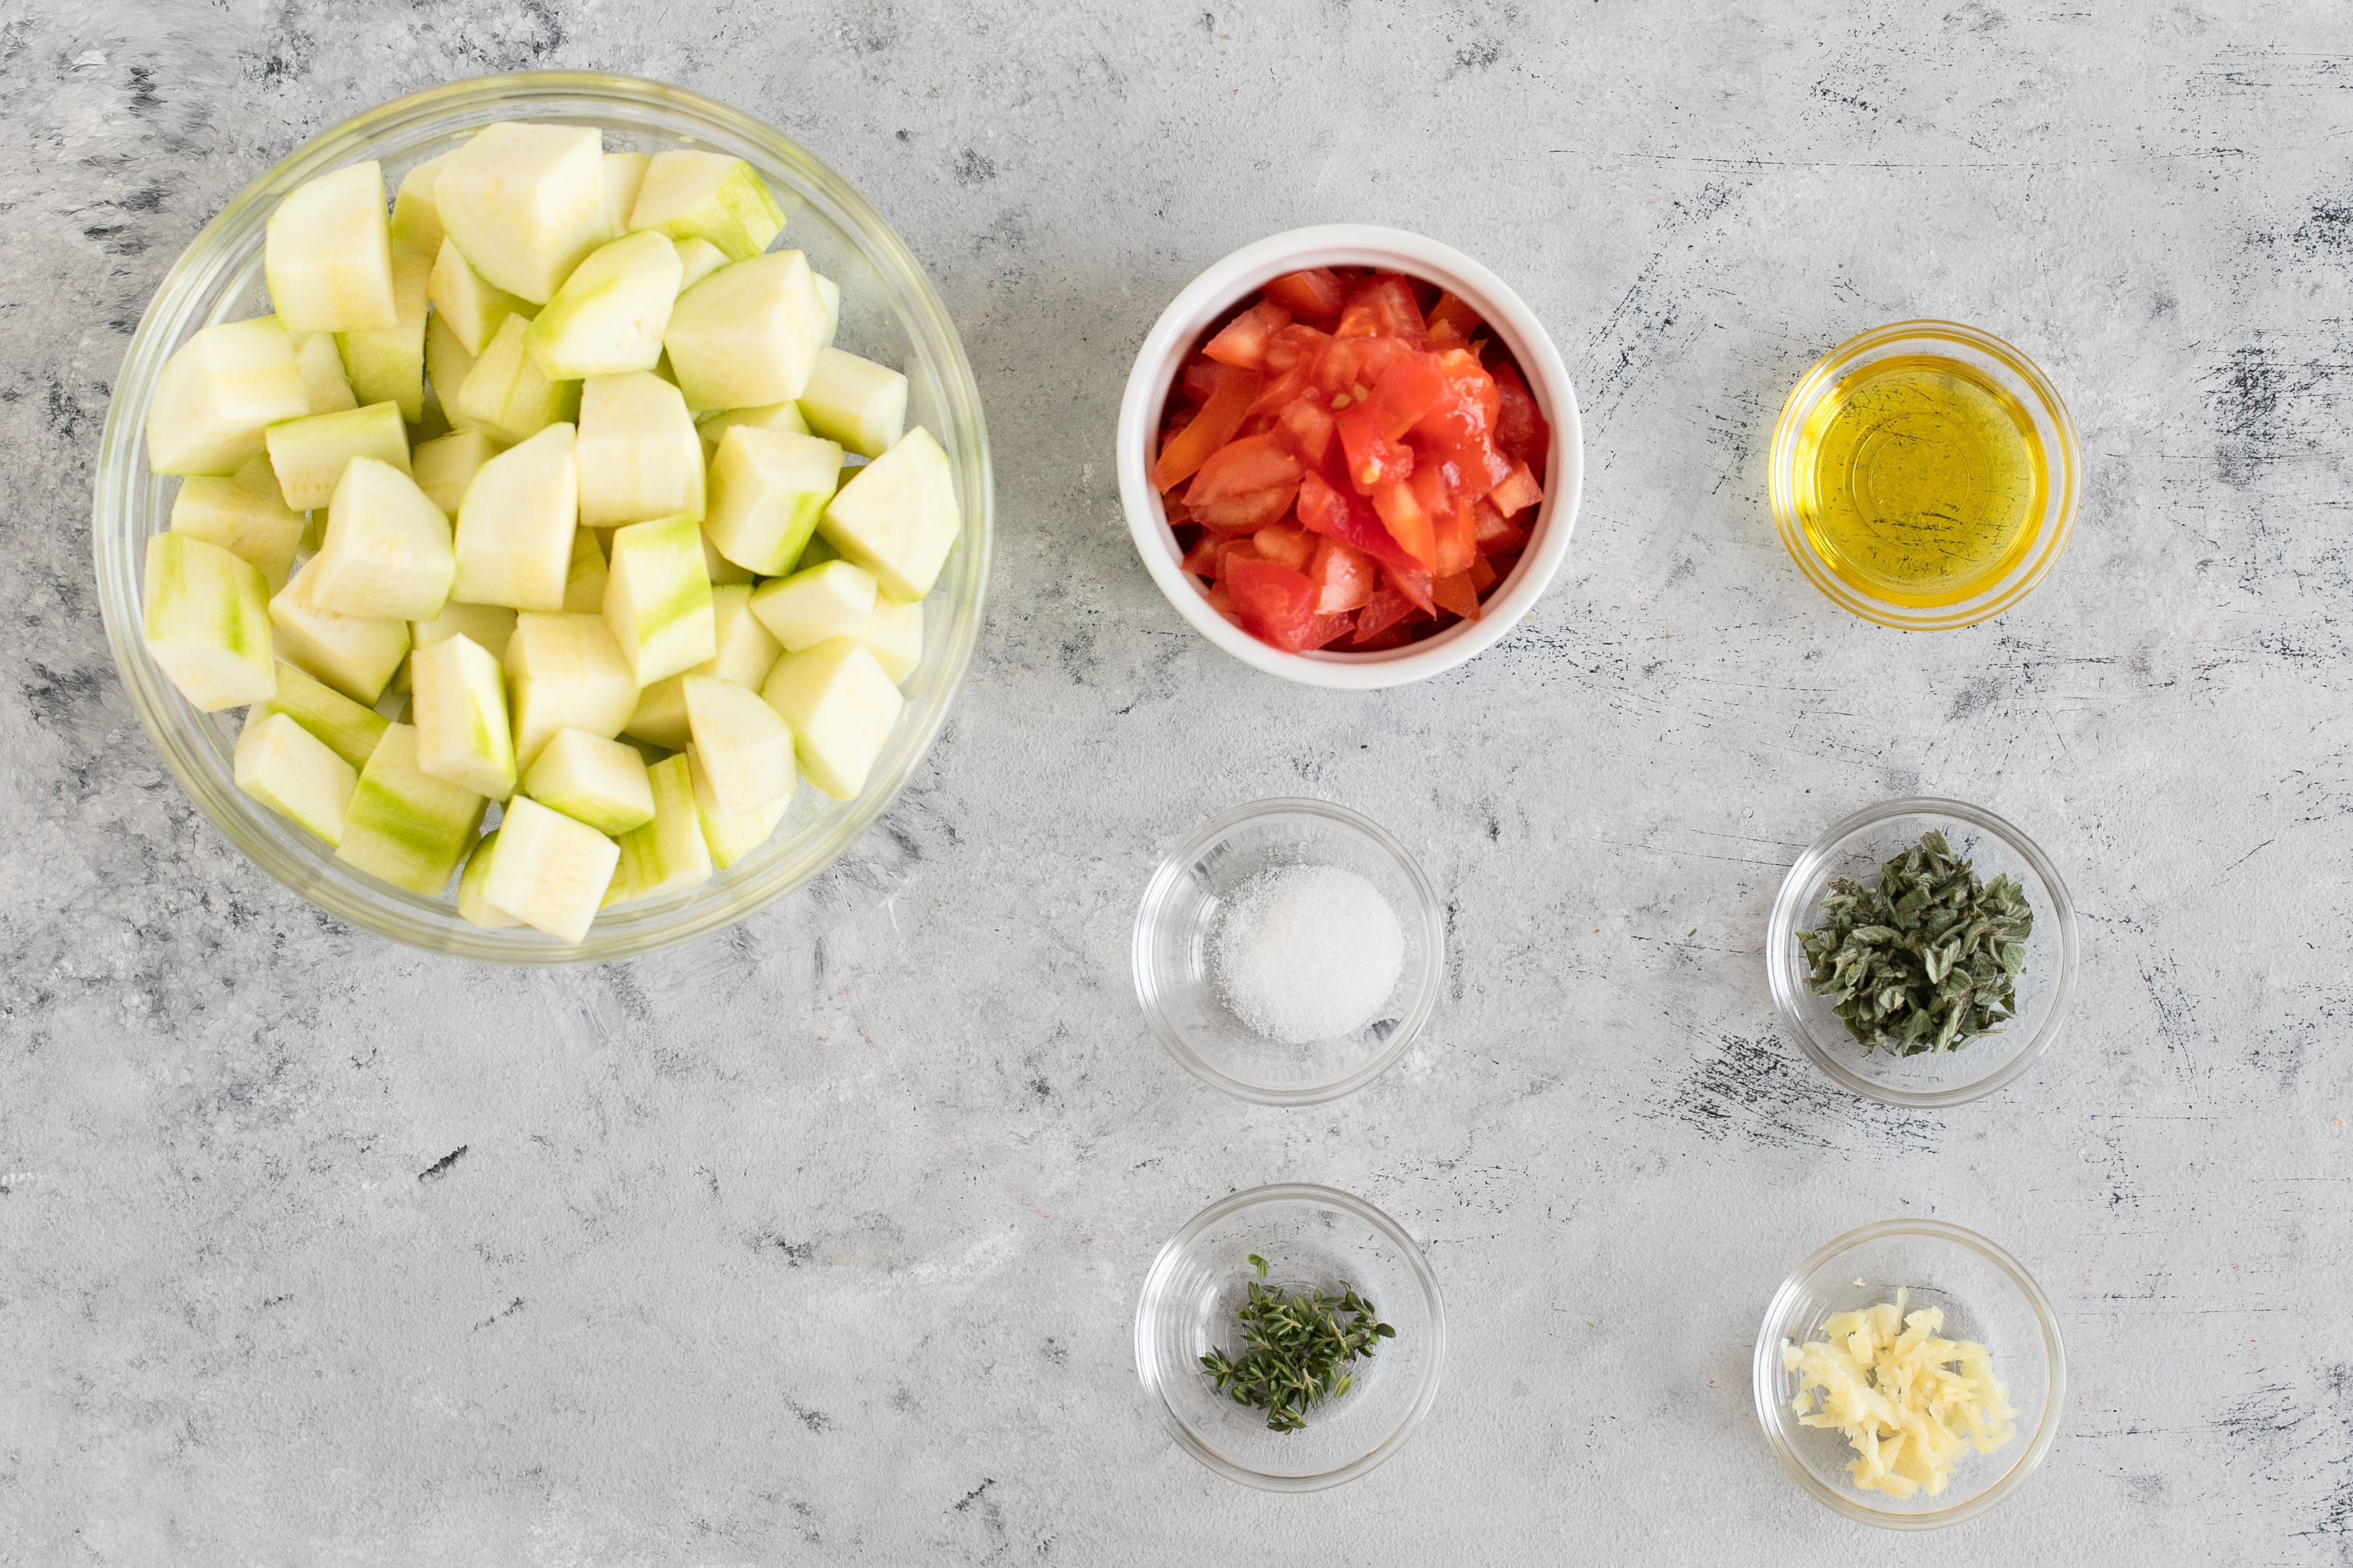 Ingredients for sauteed zucchini